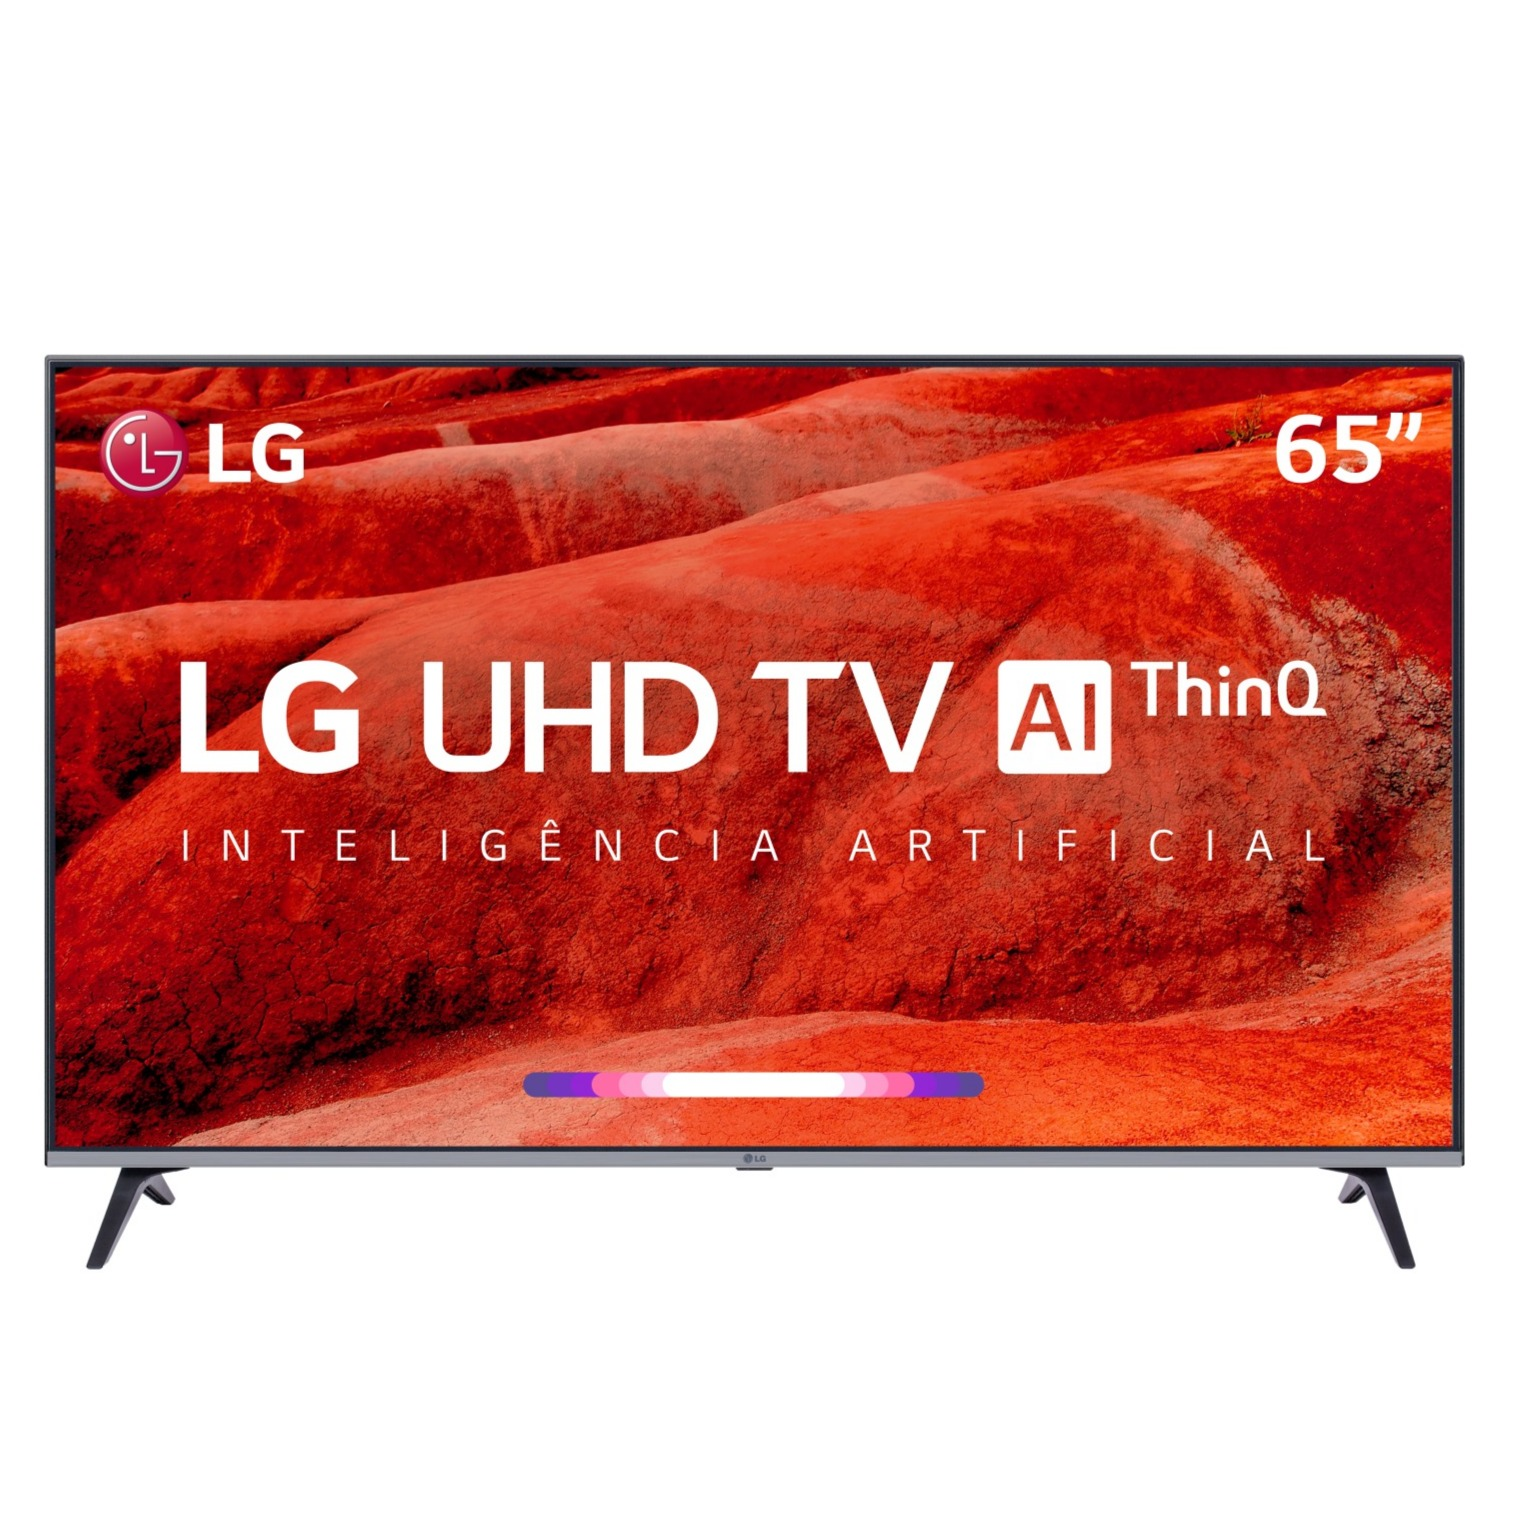 Smart TV LED 65 LG 4KUltra HD ThinQ AI HDR Ativo - 4 HDMI 2 USB - 65UM7520